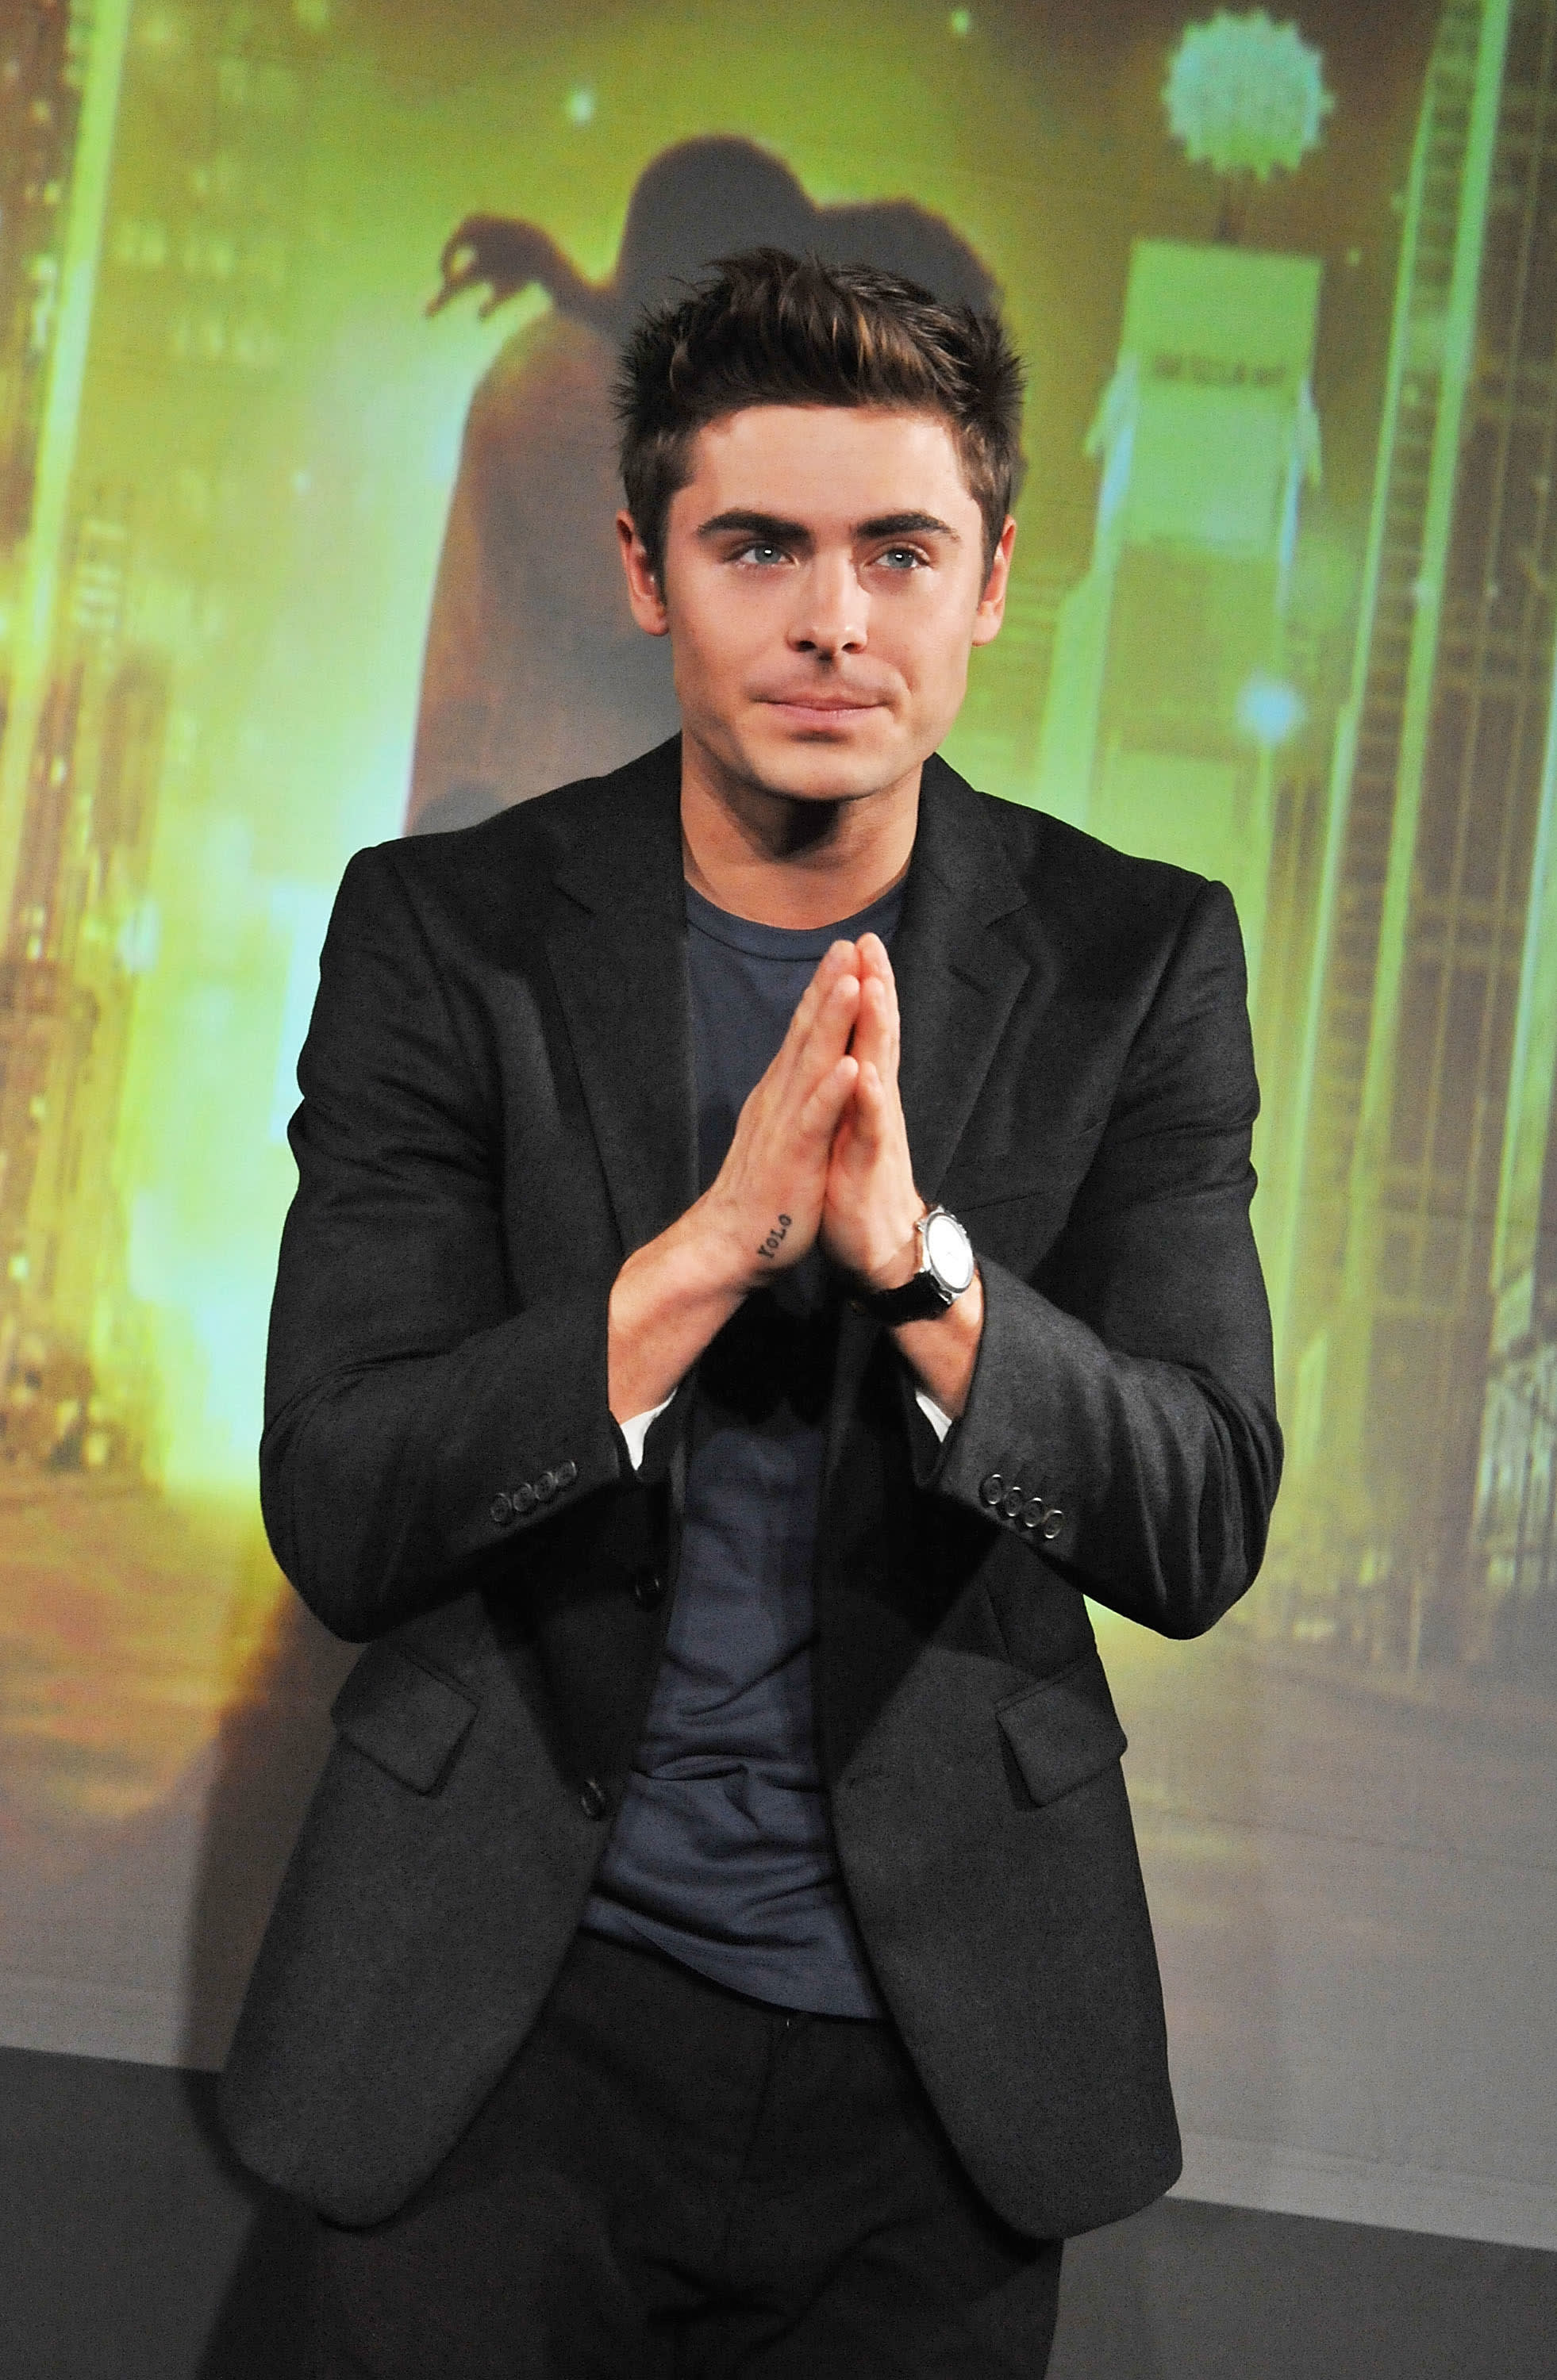 Zac Efron with his hands together